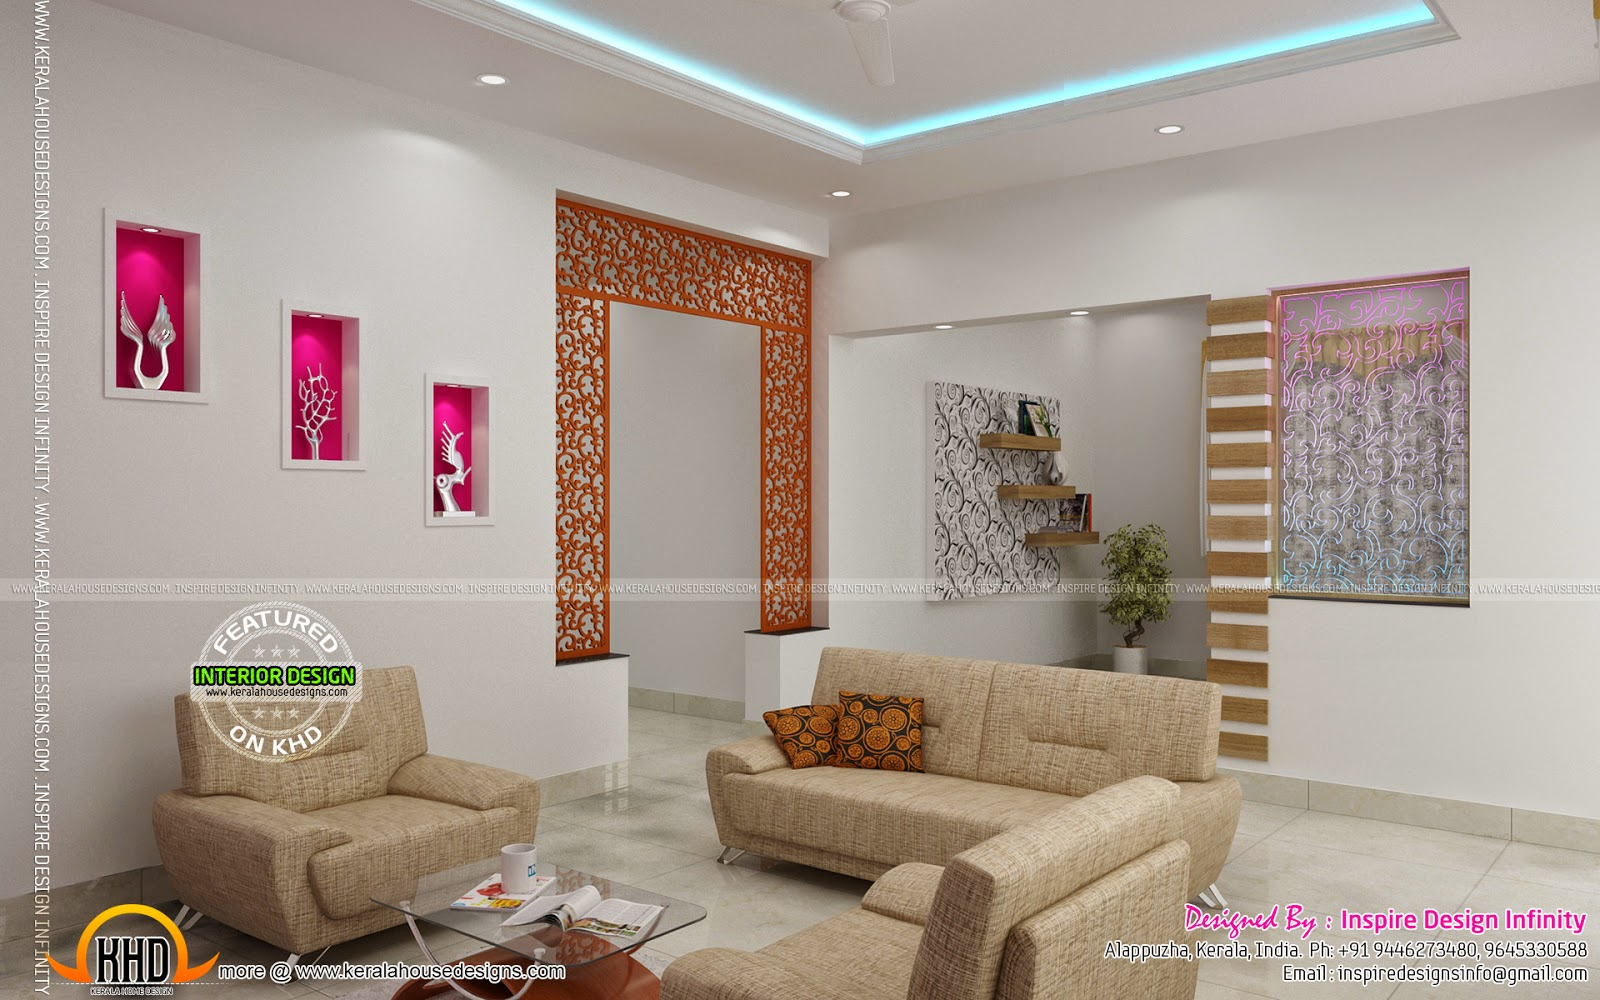 Interior designs by inspire design infinity kerala home for Kerala interior designs